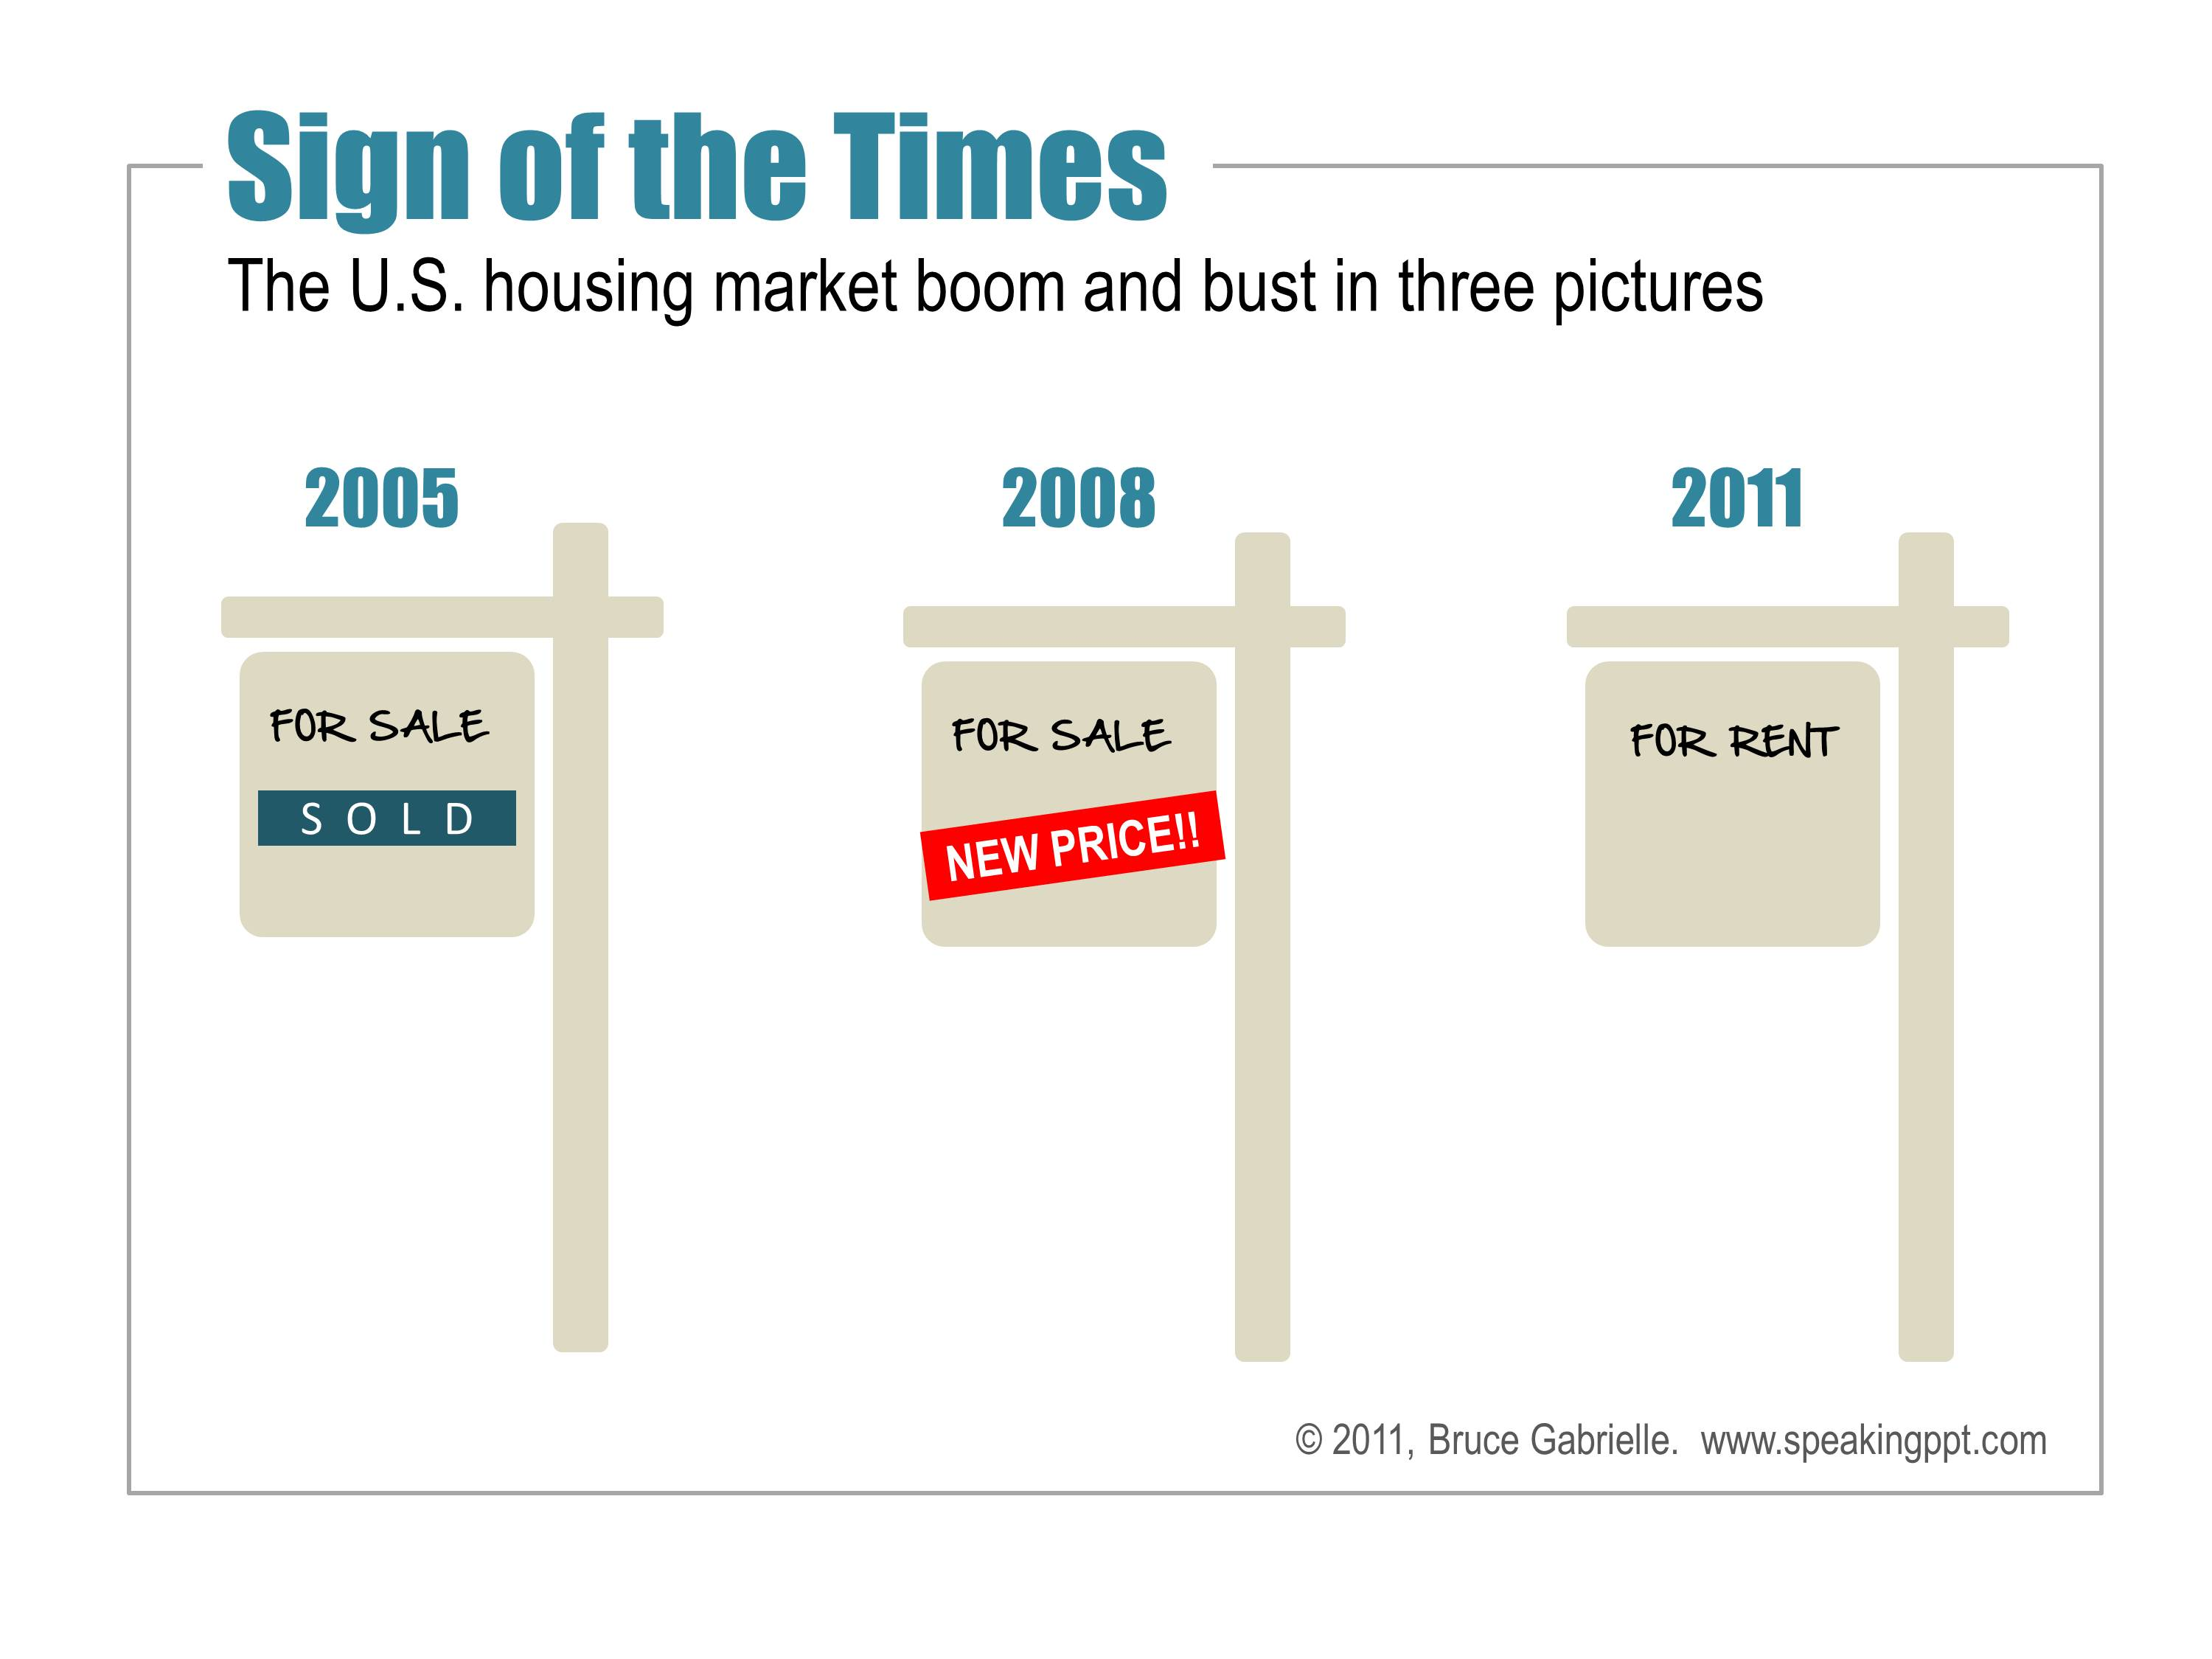 story of us housing market boom and bust in 3 pictures